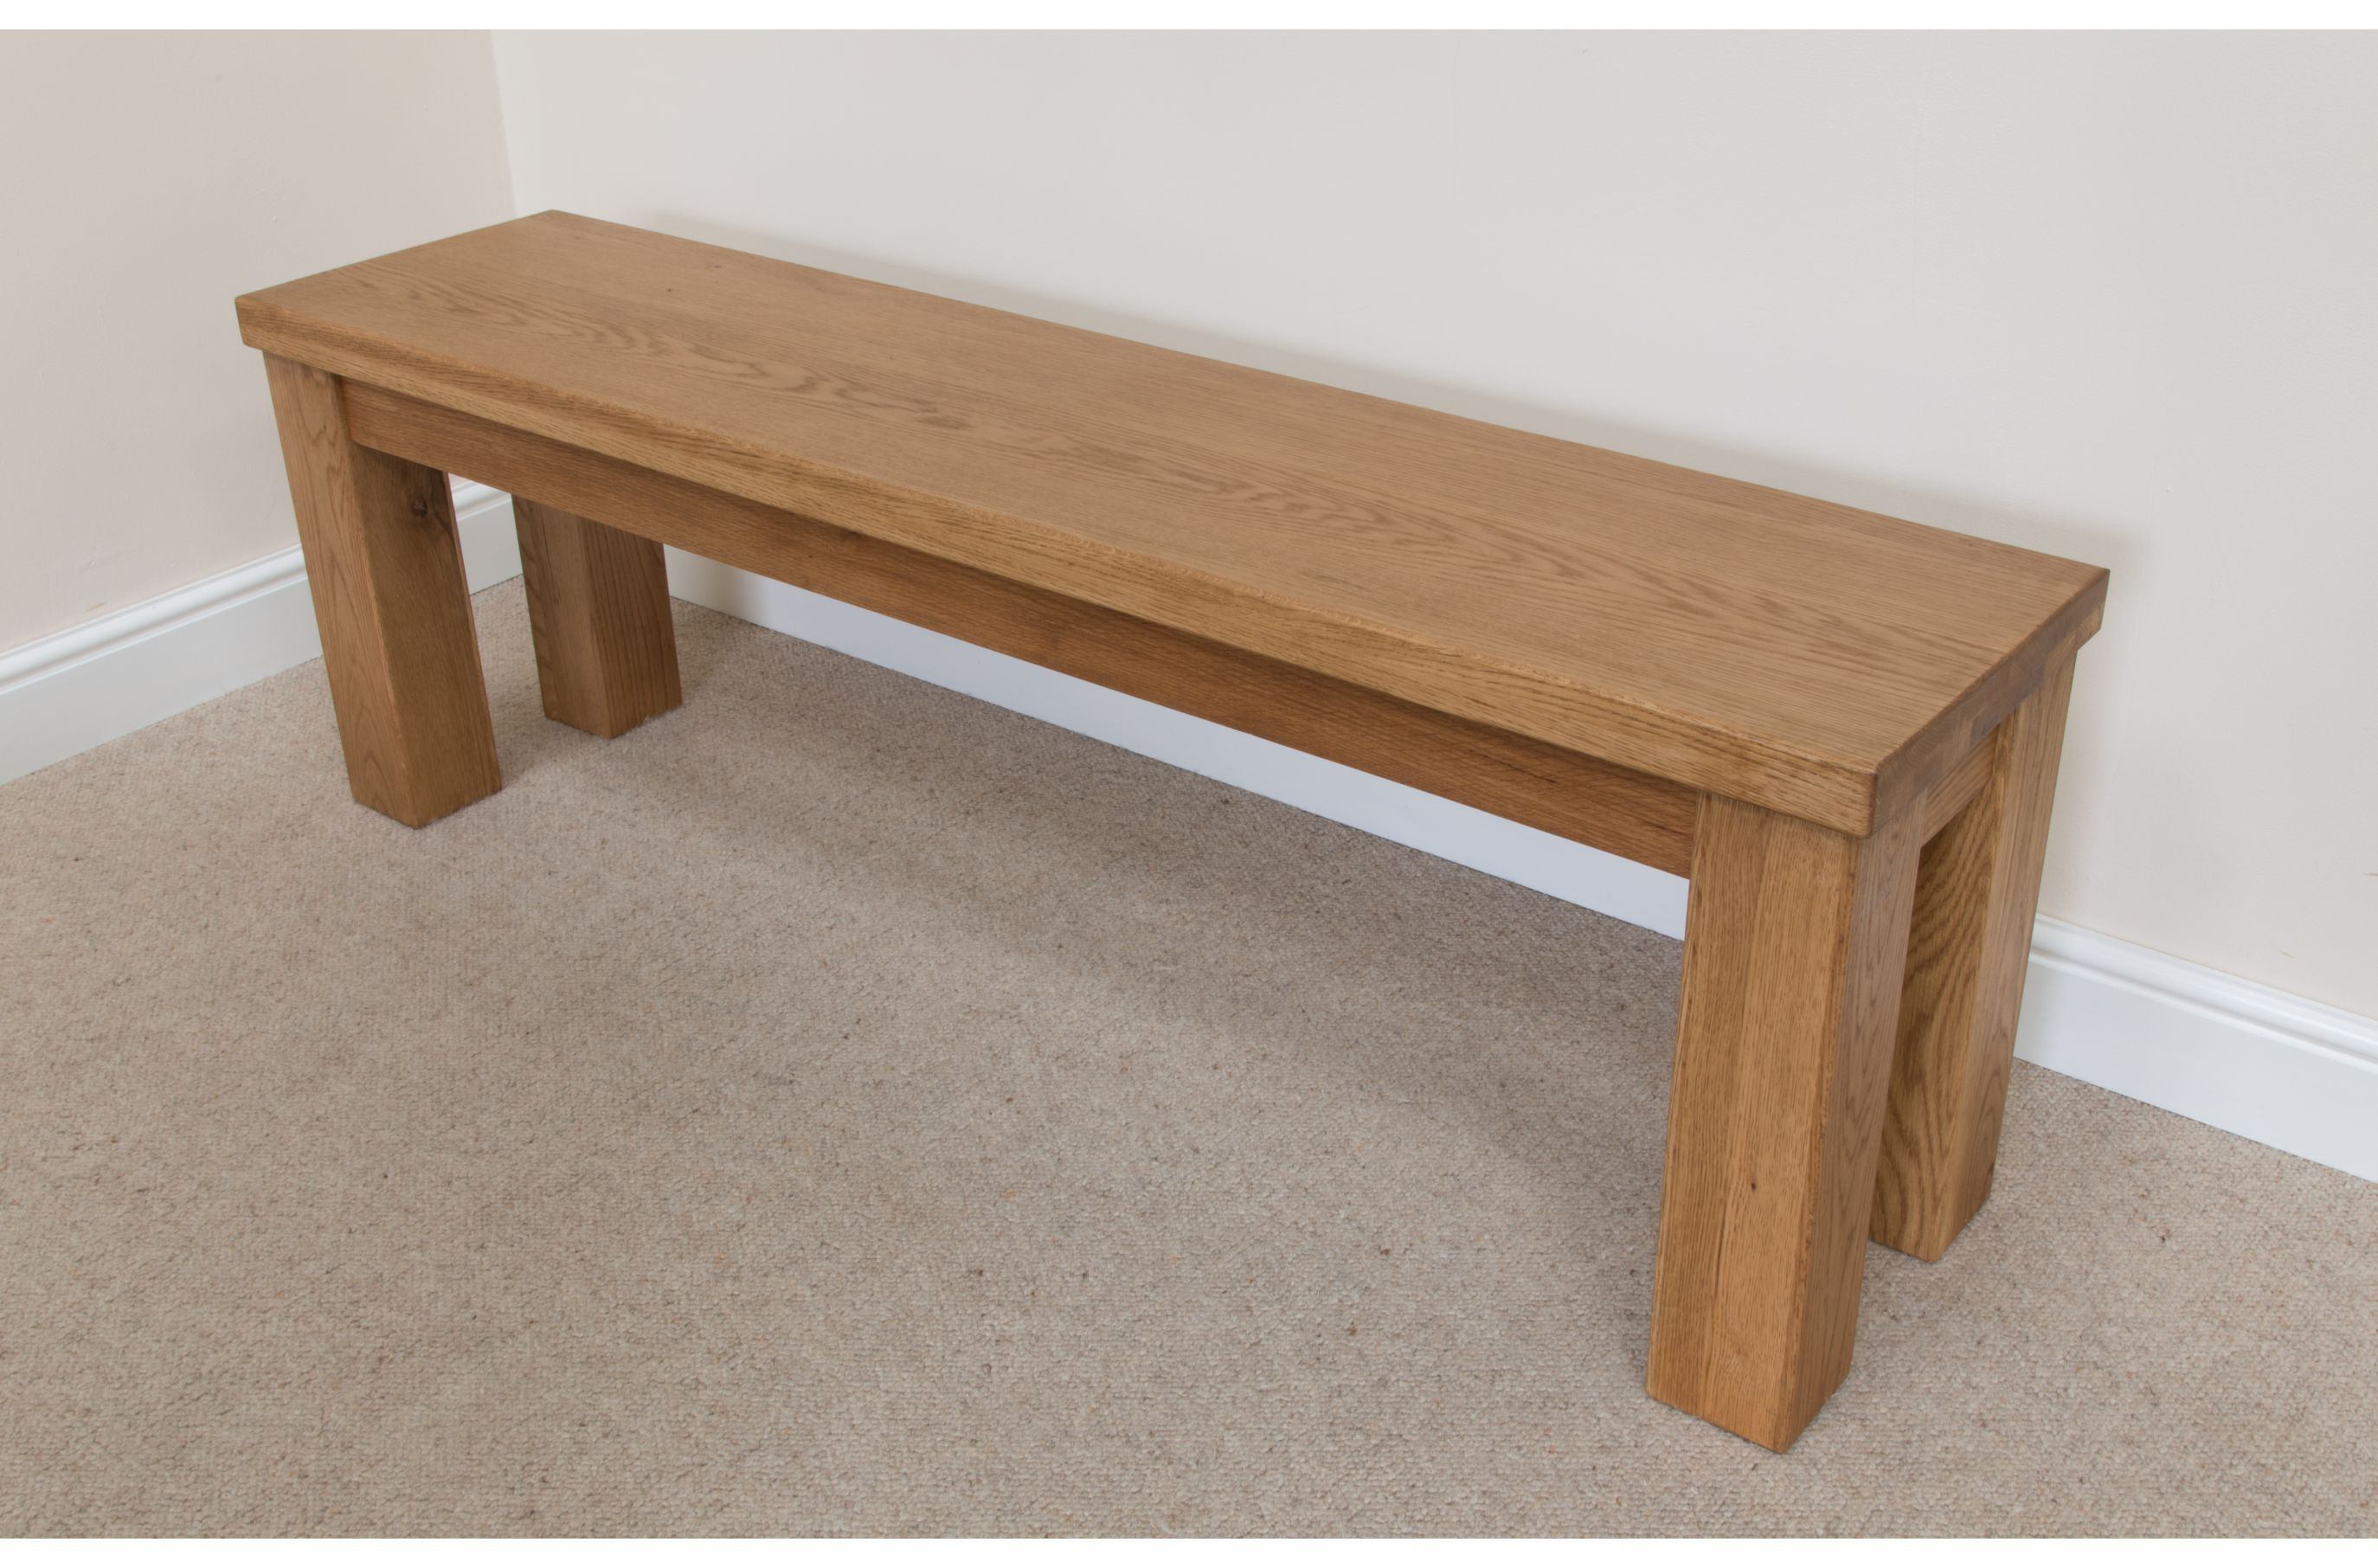 Attrayant Solid Oak Chunky Rustic Indoor Wooden Dining Bench   1.2m Long